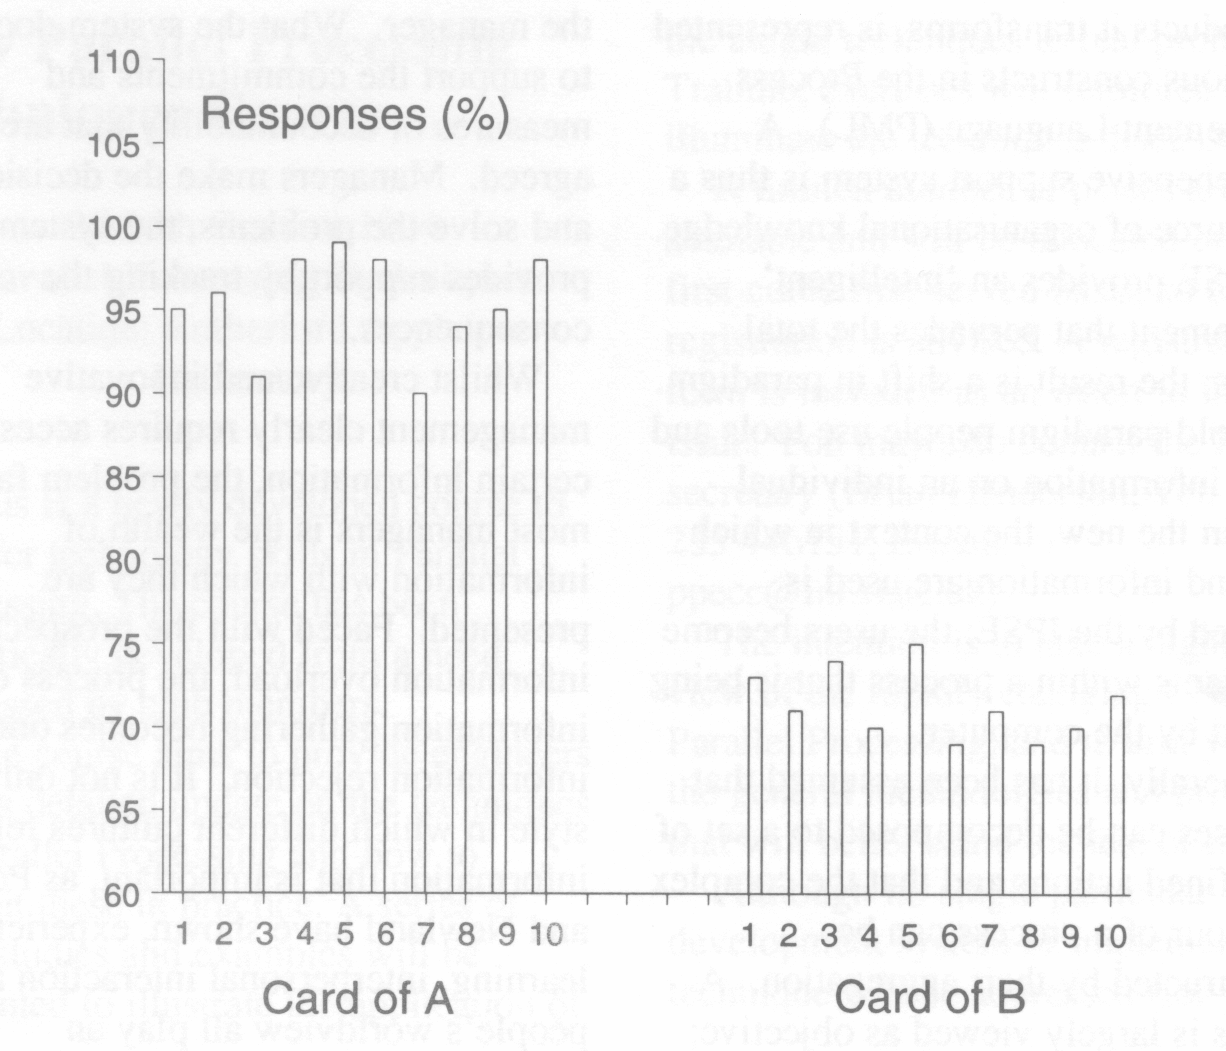 Figure 3: Discriminator responses for the inspection of two credit cards at ten different positions